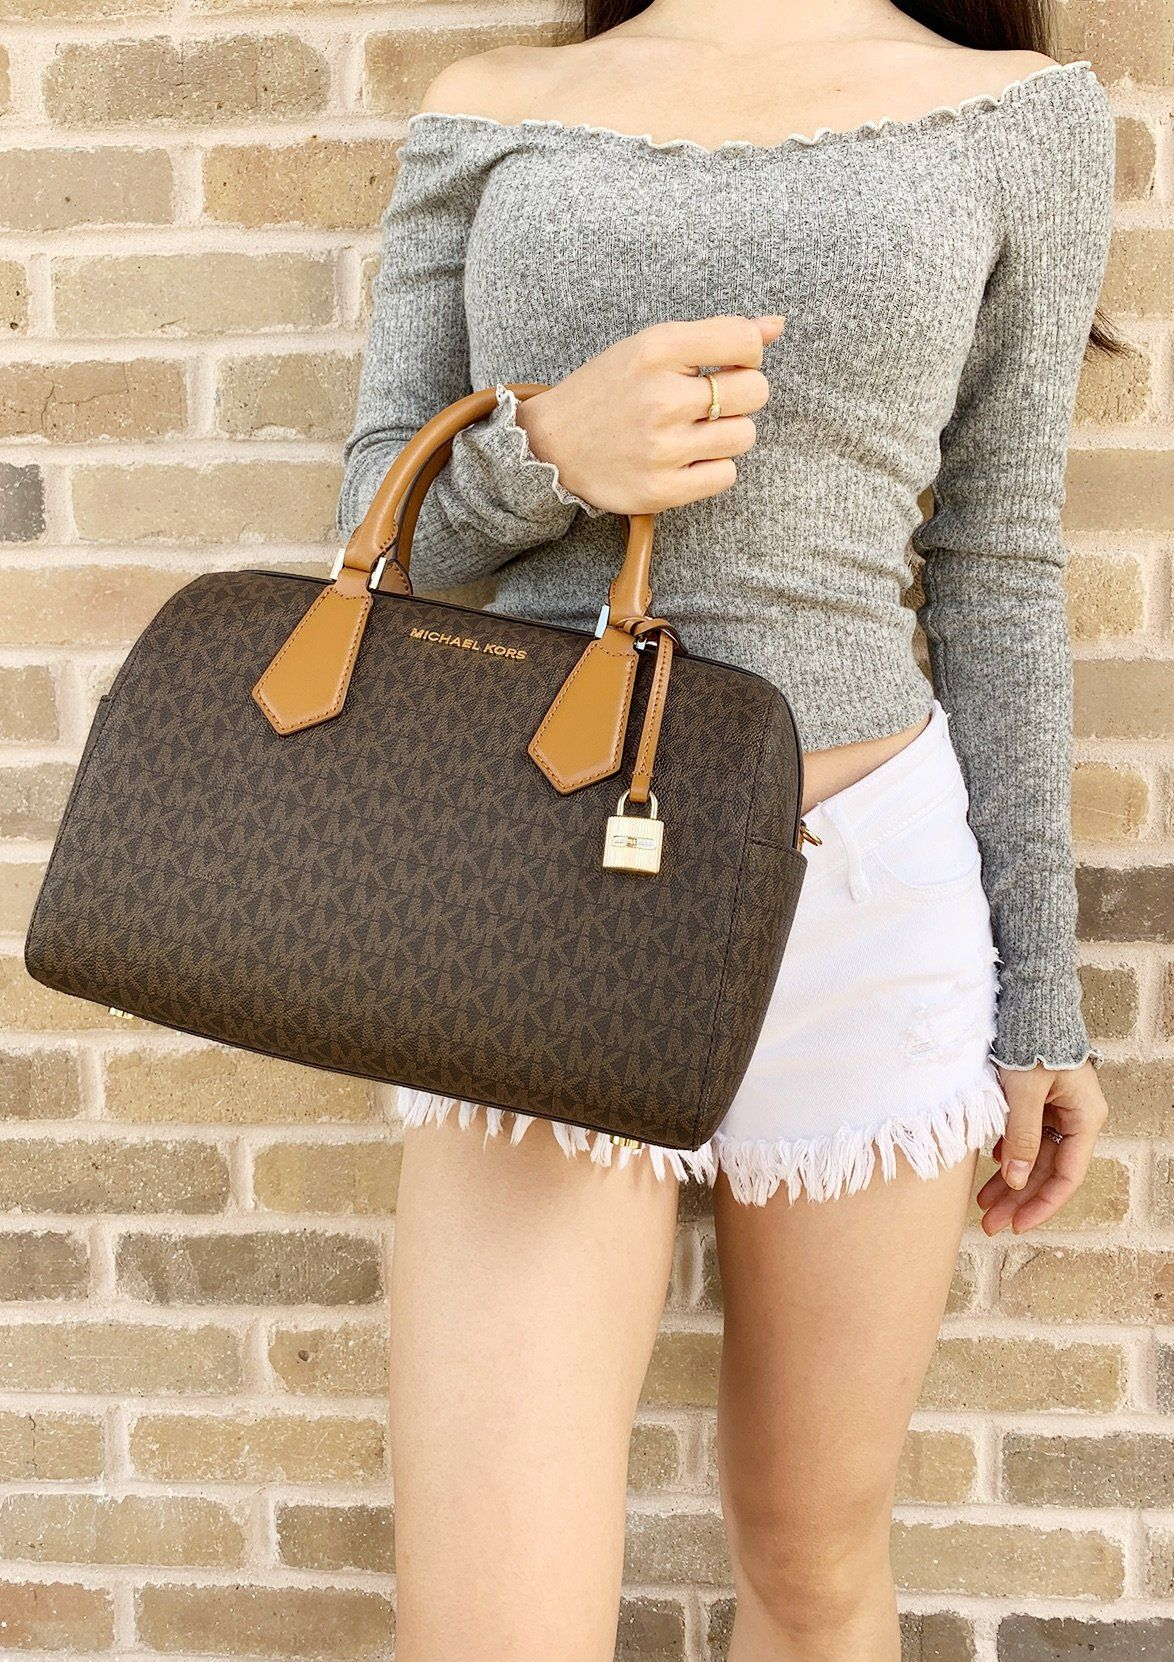 ba1d3ef2fe54 Michael Kors Hayes Large Duffle Satchel Bag Brown MK Signature  MK   ebayfashion  mercariapp  Posher  posh  poshmarkpackages  amazon  Handbags   poshpackages ...